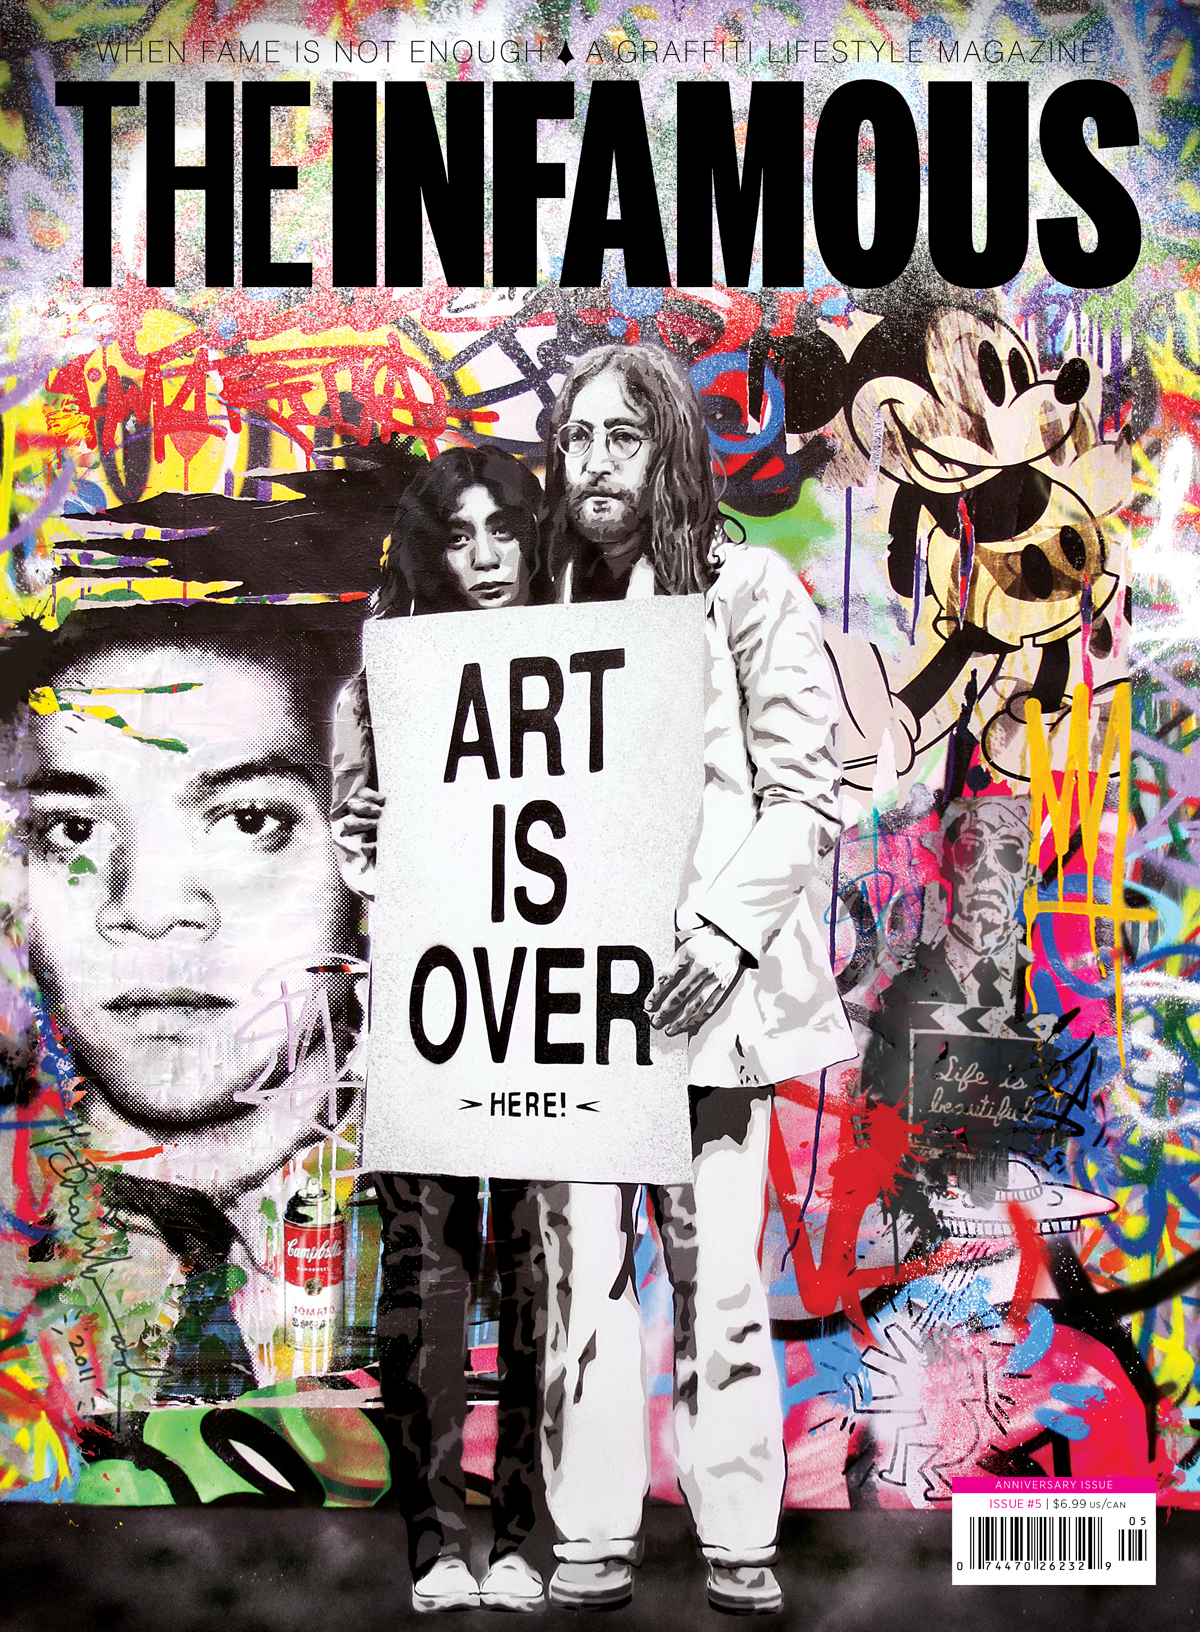 Cover of Issue 5 of The Infamous magazine, 2011. Illustration by Mr. Brainwash.